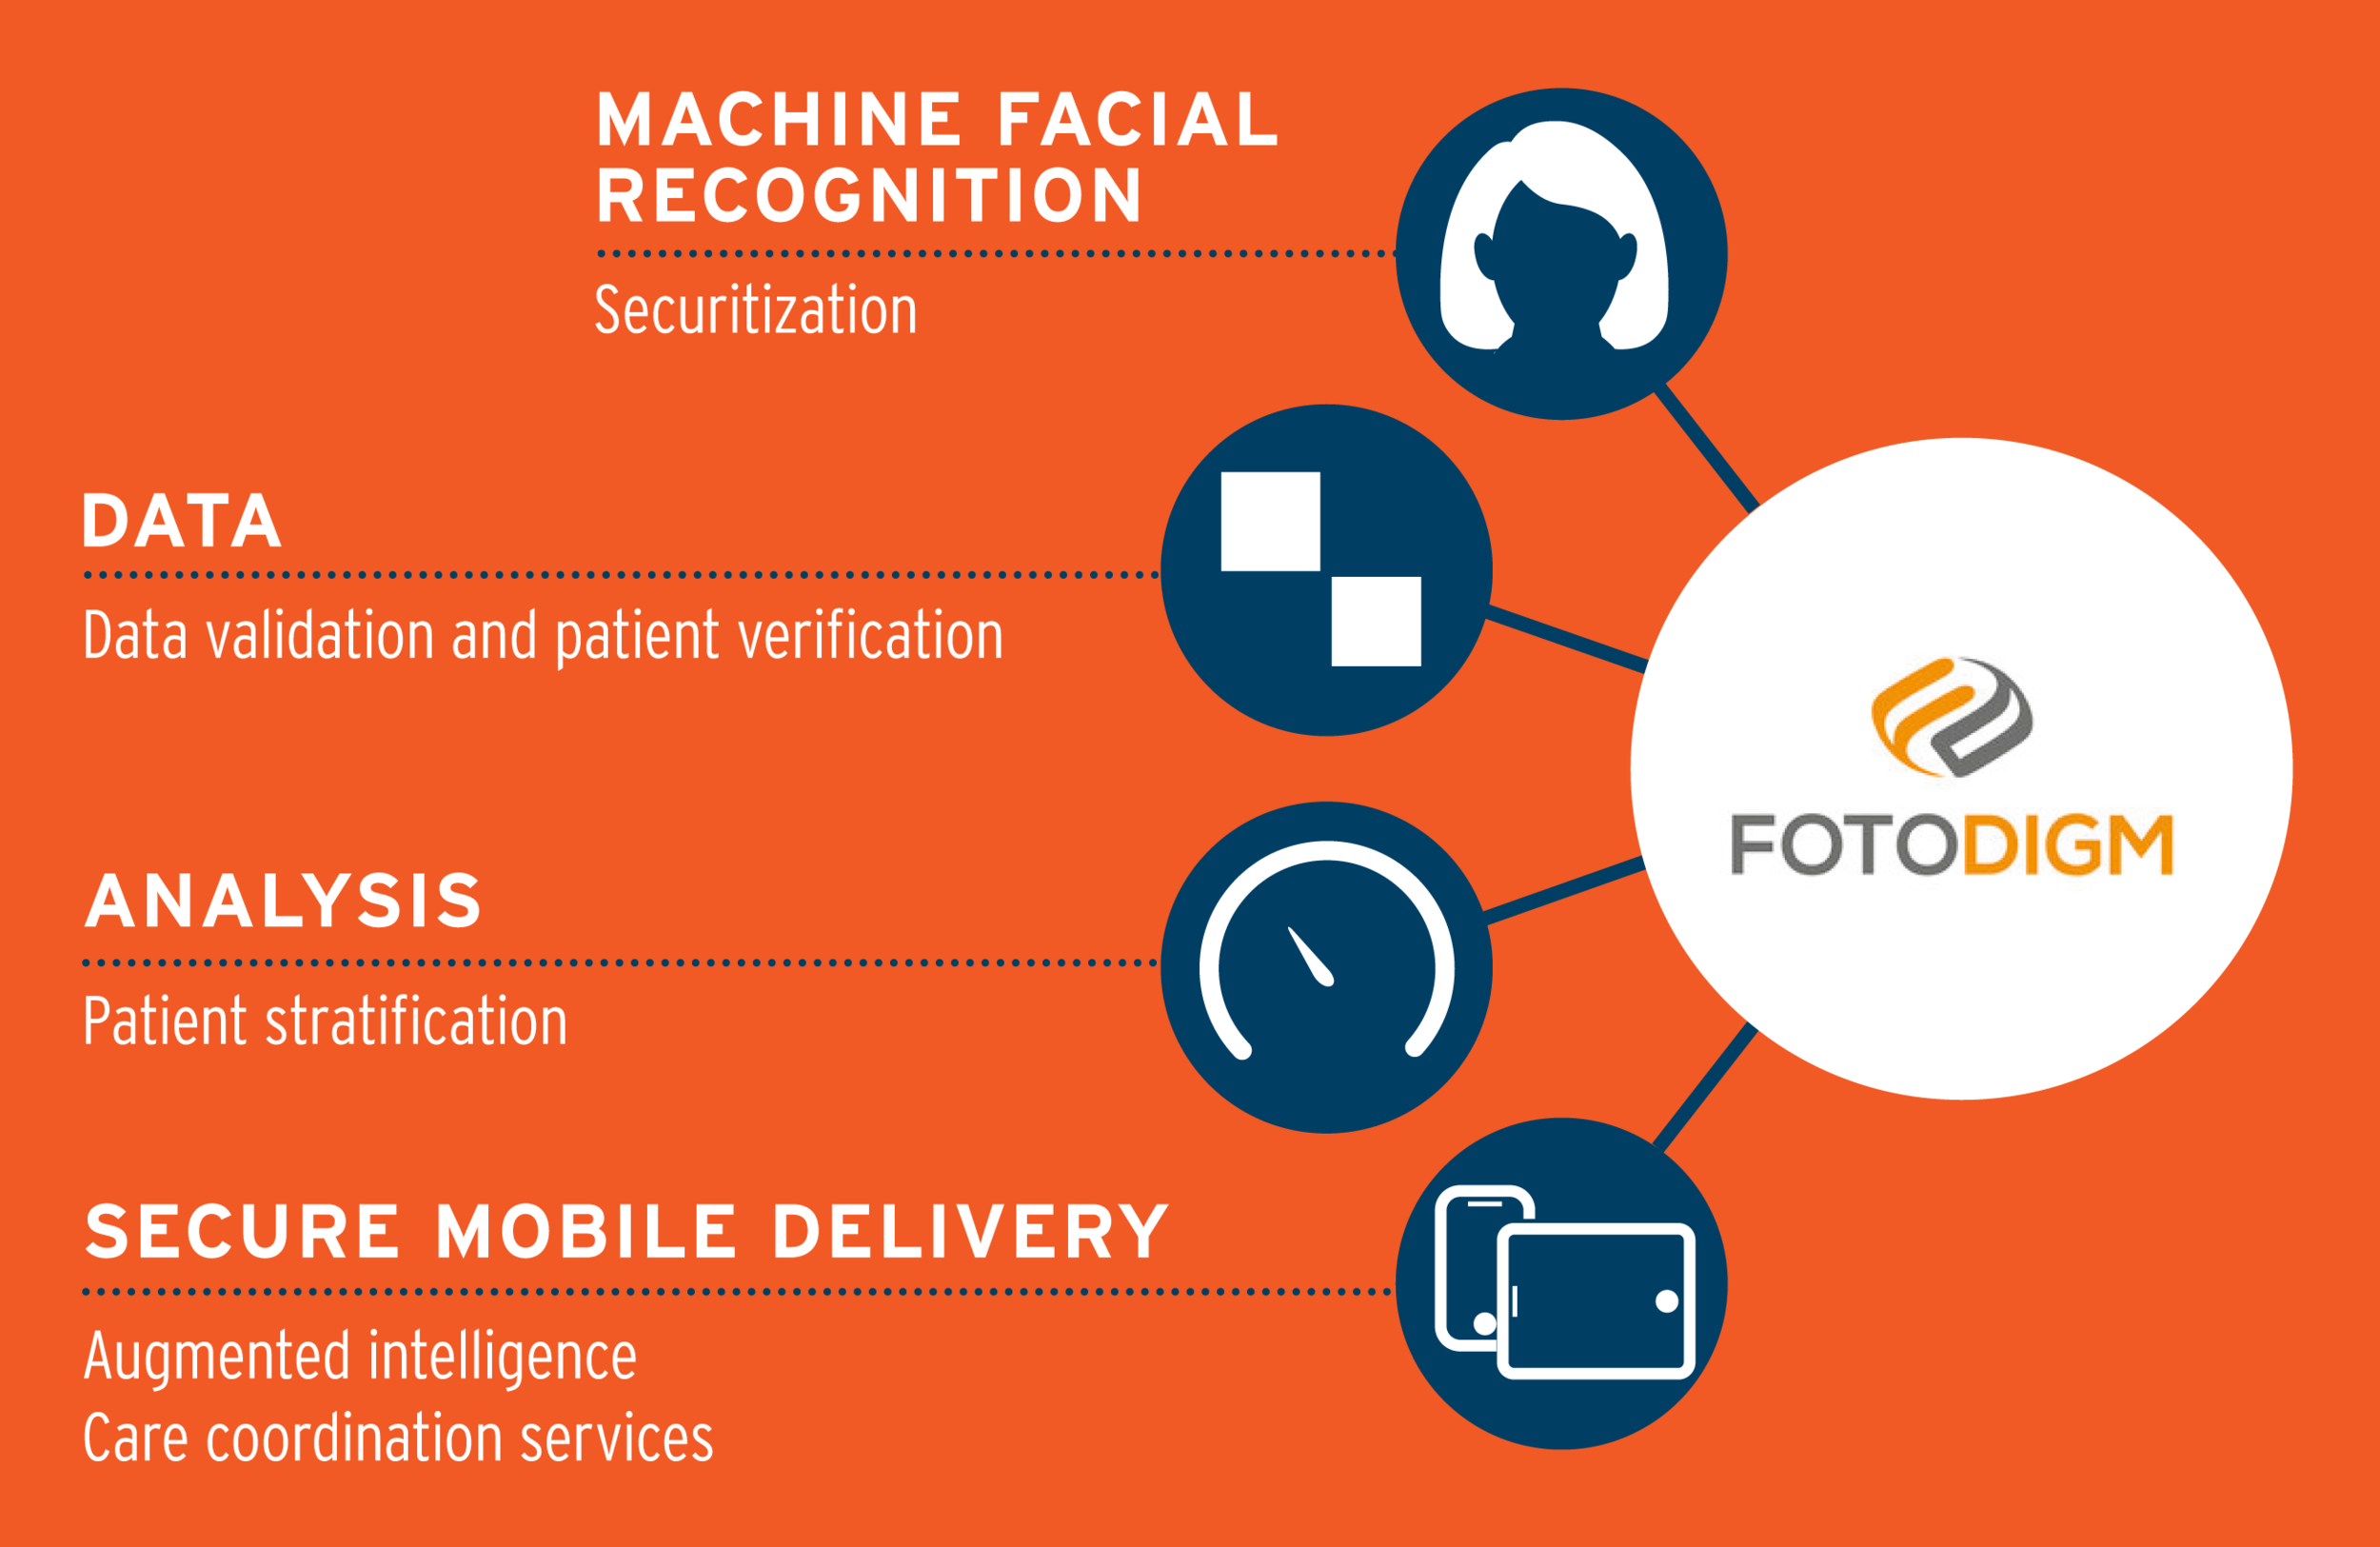 FotoDigm by ParallaxCare  Machine Facial Recognition - Added Security for Healthcare and Telehealth  Data validation and patient verification for accurate and optimized health outcomes.  Analysis on patient data and healthcare to produce better health outcomes.  Secure Mobile Delivery with augmented intelligence care with coordinated health care and services.